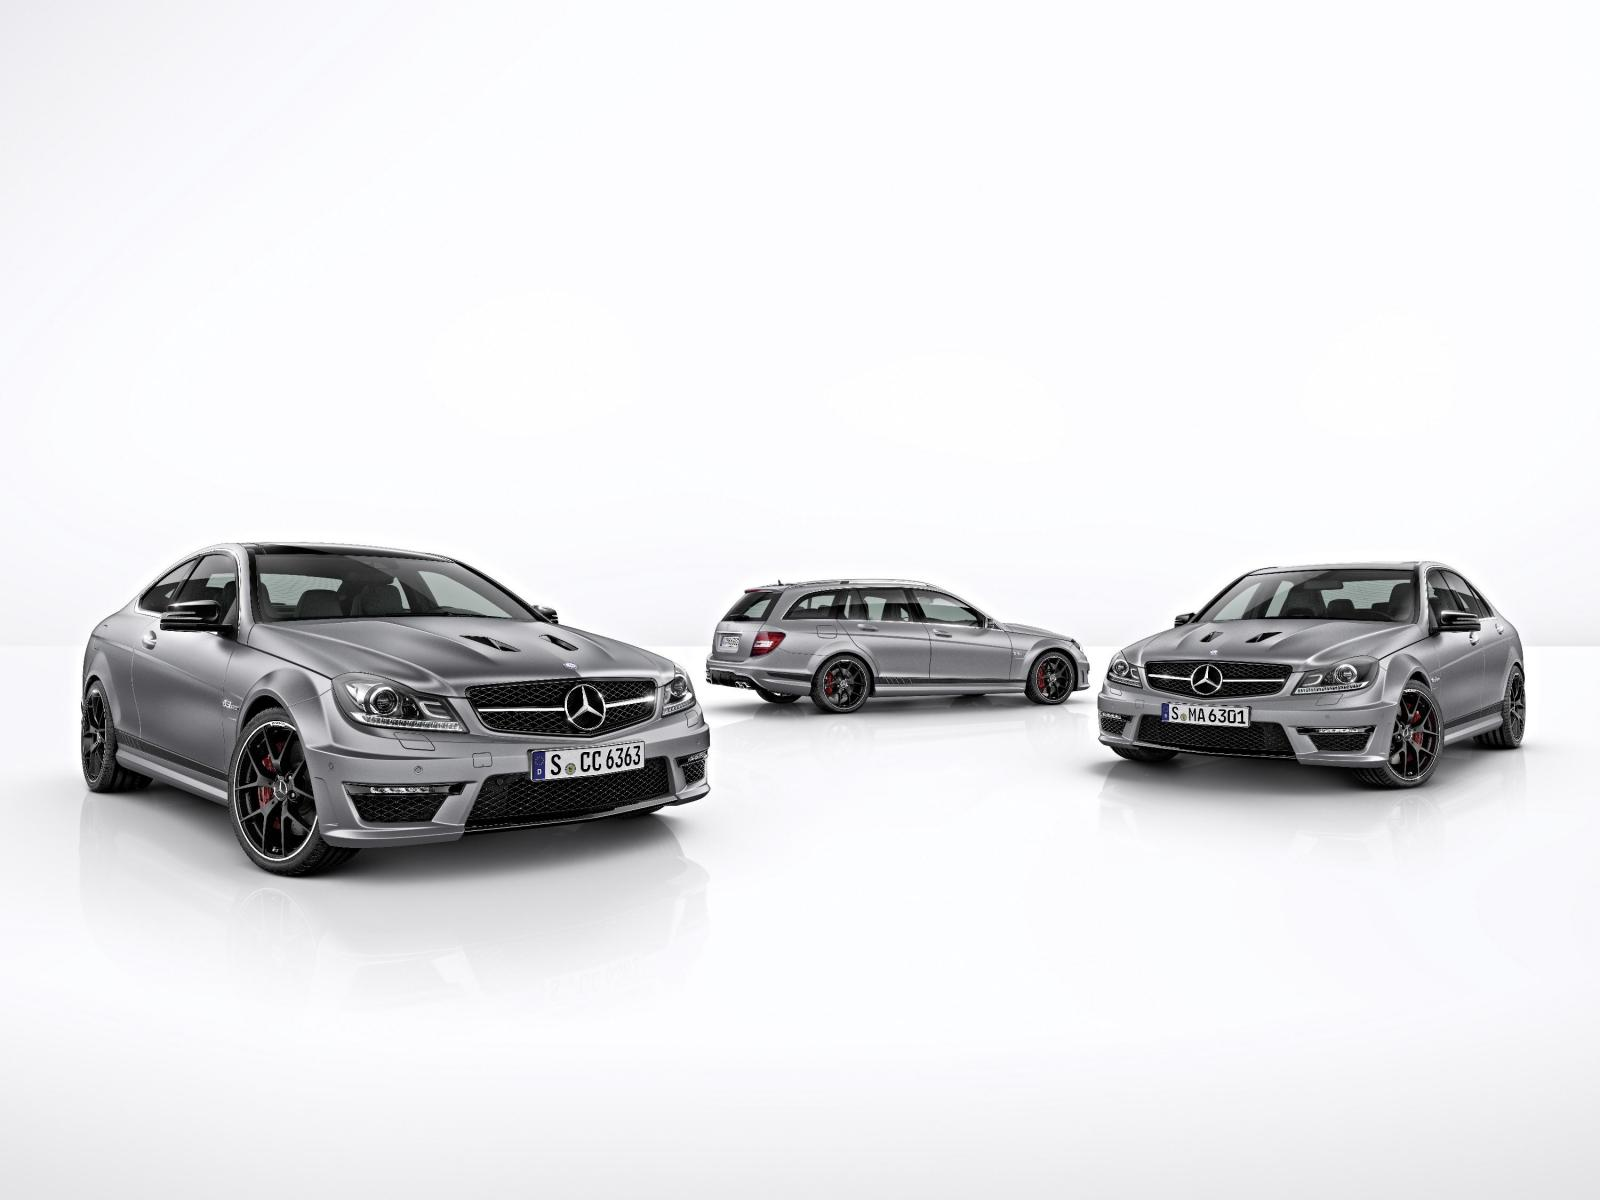 2014 mercedes benz c63 amg edition 507 released video for Mercedes benz video